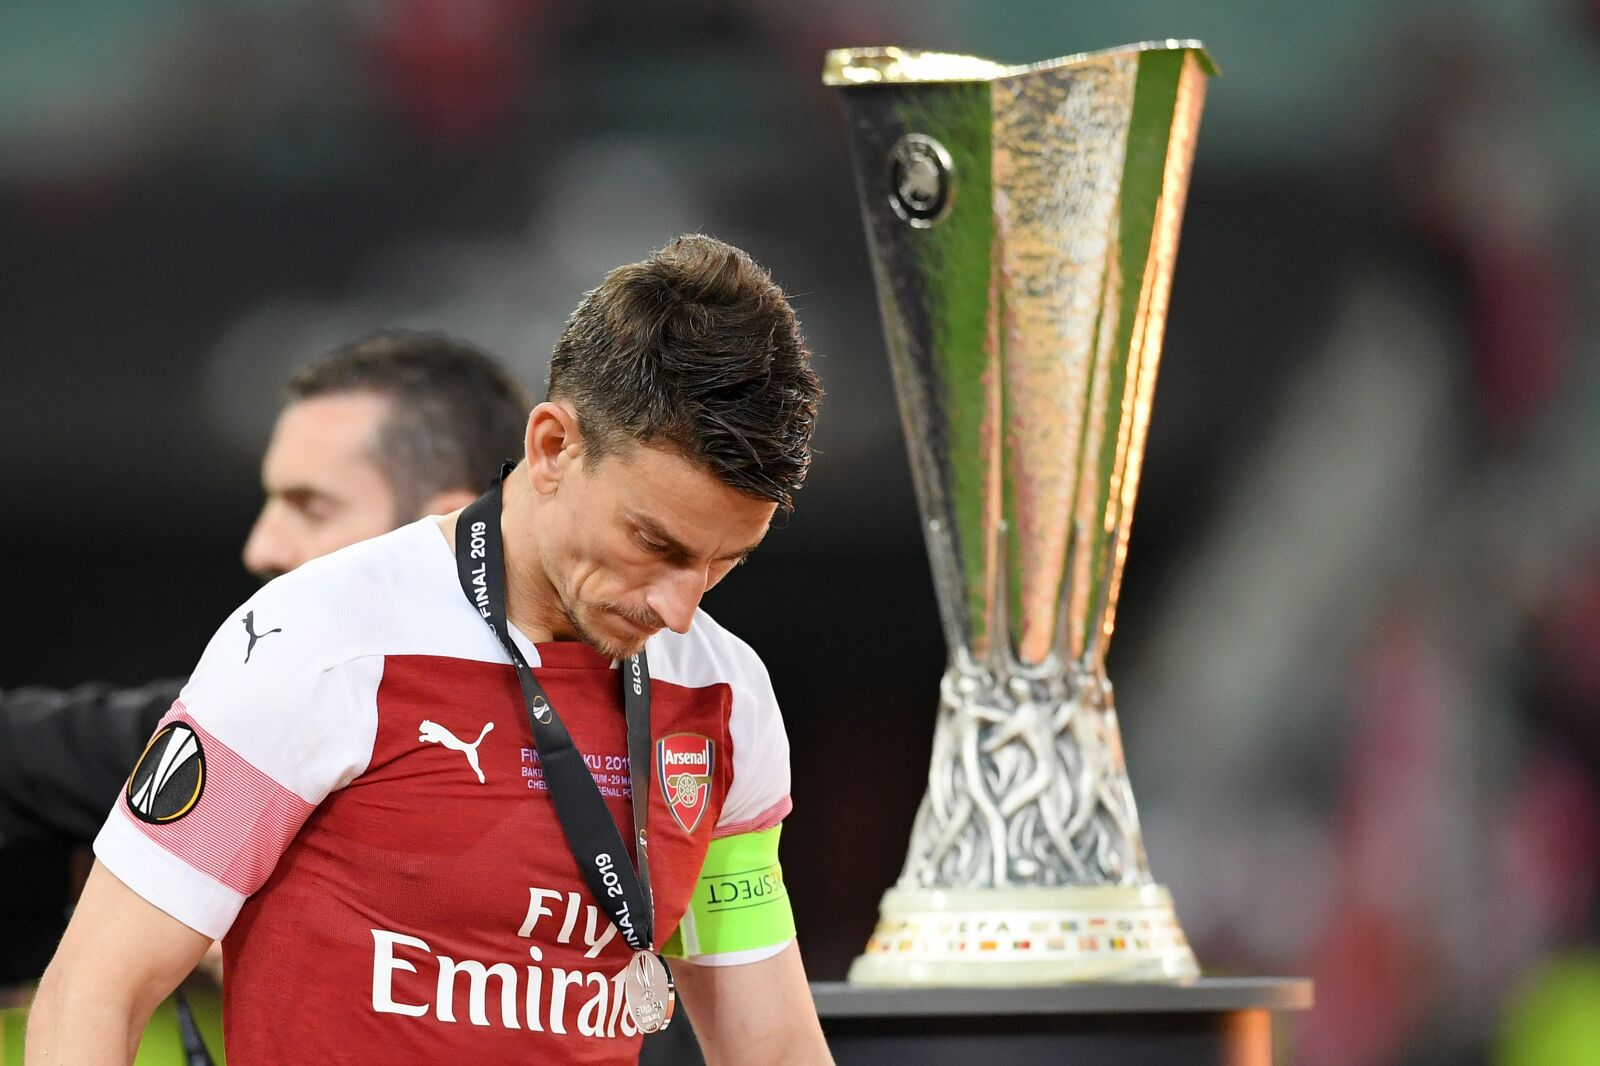 Arsenal and Laurent Koscielny: What else do we need to know?